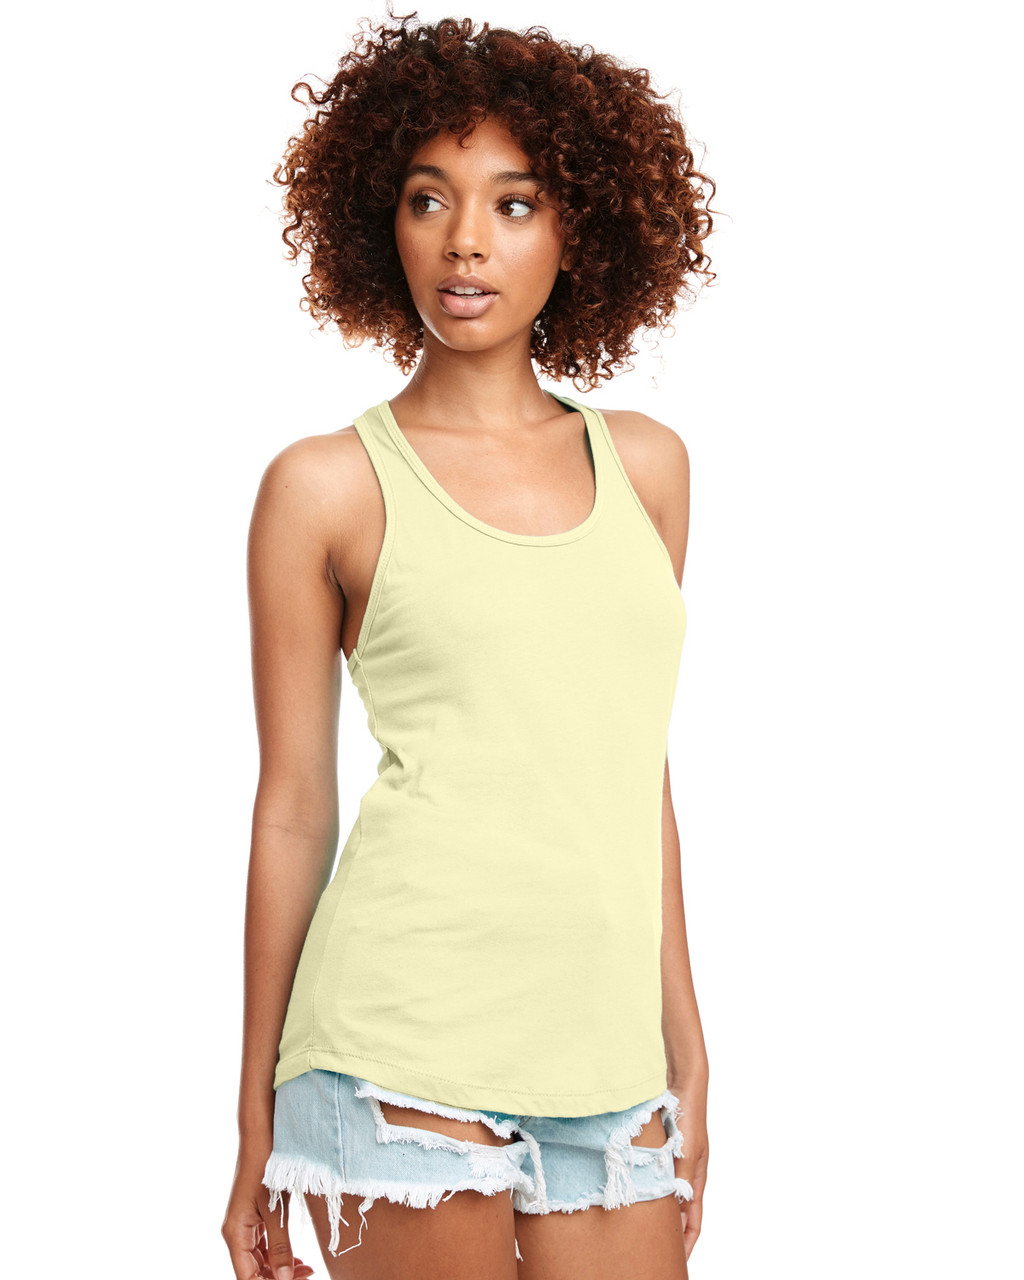 Banana Cream - N1533 Next Level Ideal Racerback Tank Top | Blankclothing.ca